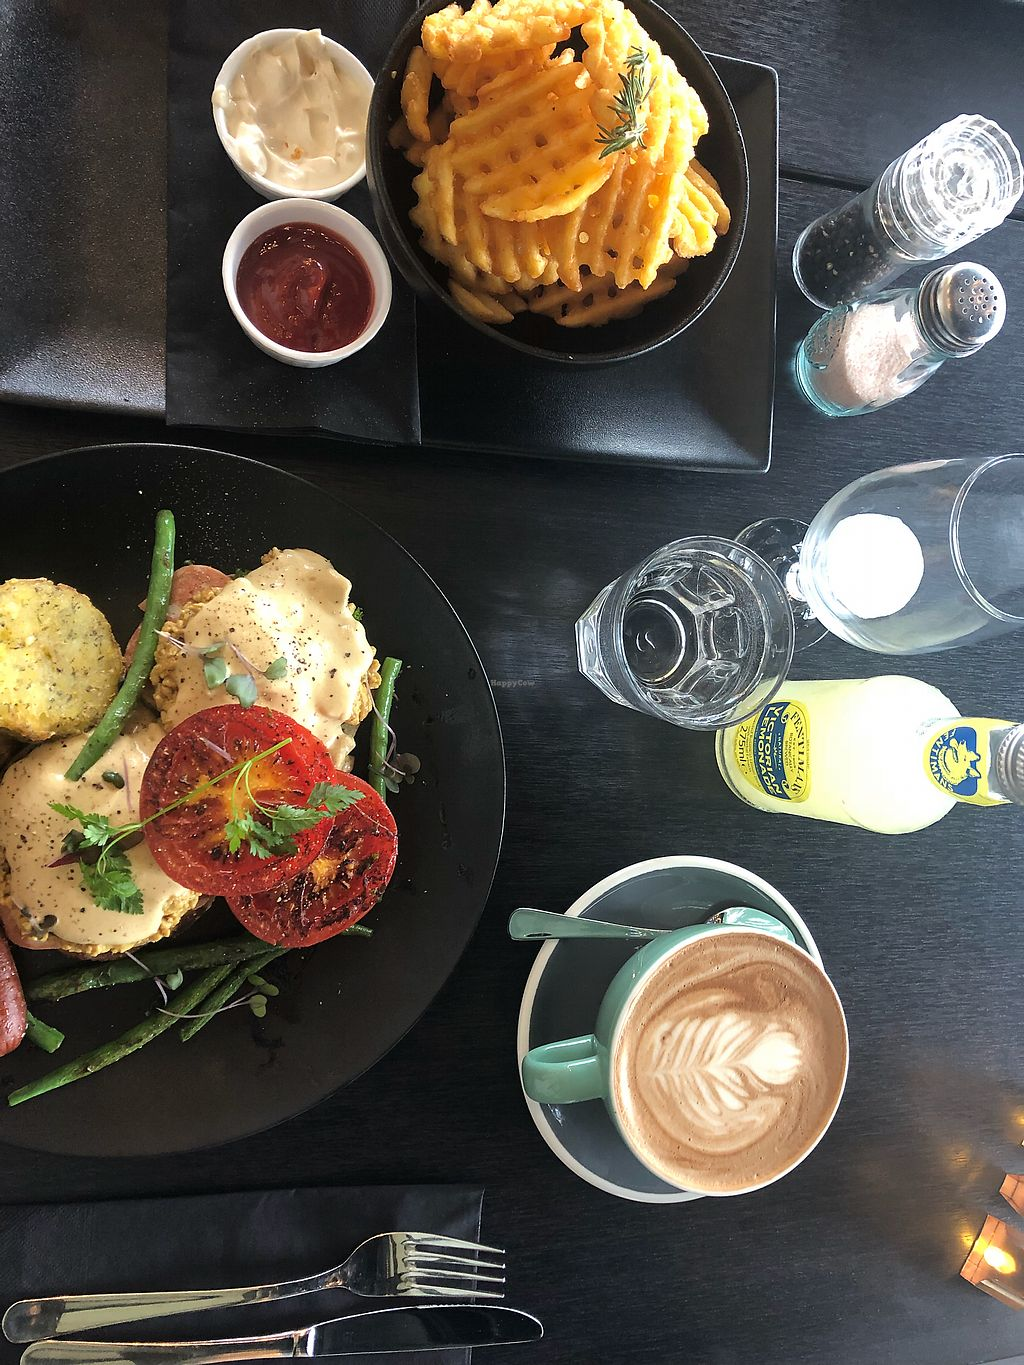 "Photo of Raw Sugar Cafe  by <a href=""/members/profile/AndreaKrause"">AndreaKrause</a> <br/>Waffle fries with vegan miso and garlic mayo and vegan eggs Benedict. Also a coconut mocha  <br/> March 11, 2018  - <a href='/contact/abuse/image/107404/369138'>Report</a>"